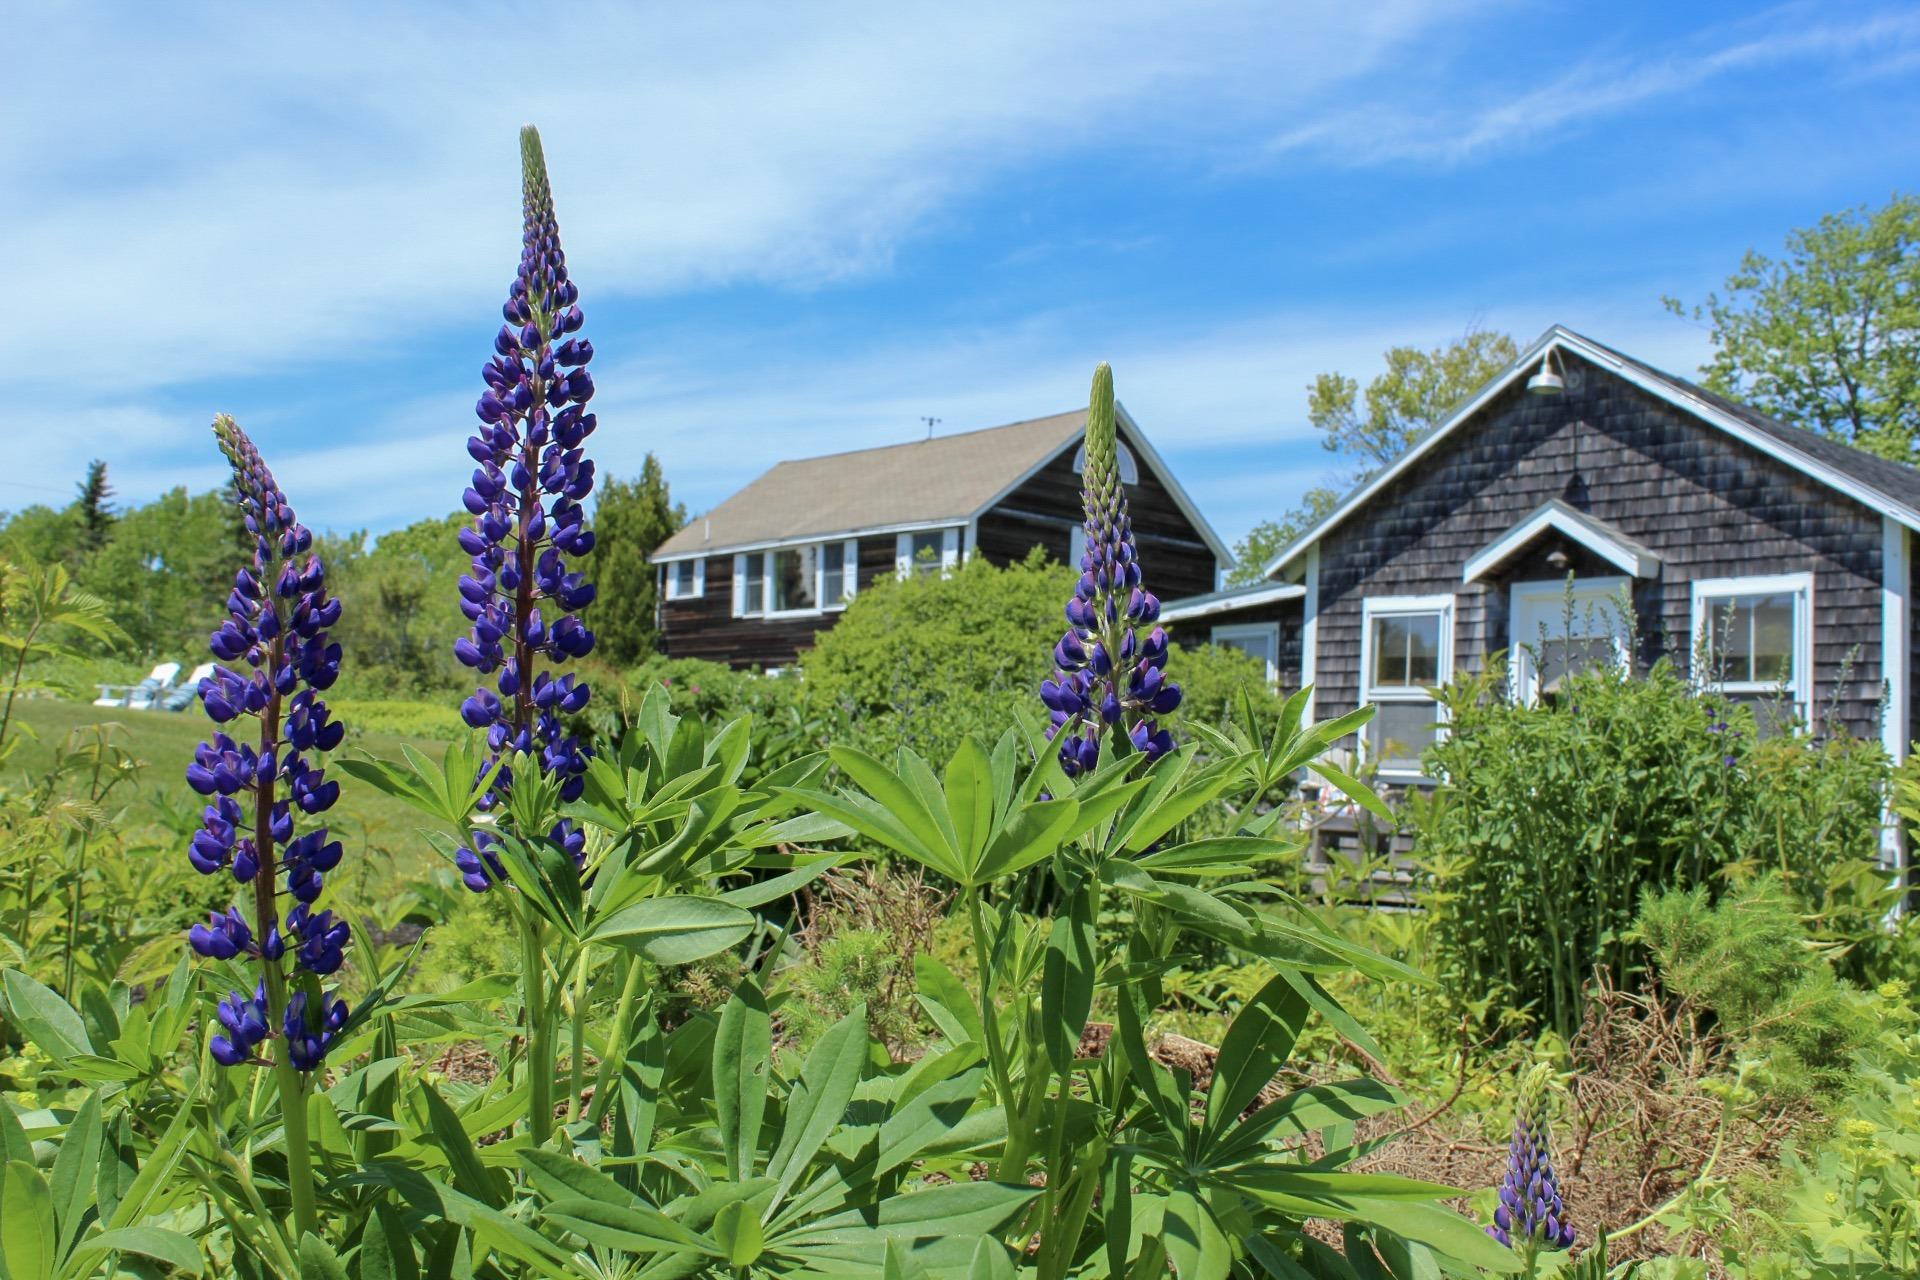 Lupine with car house and gb - The Bradley Inn